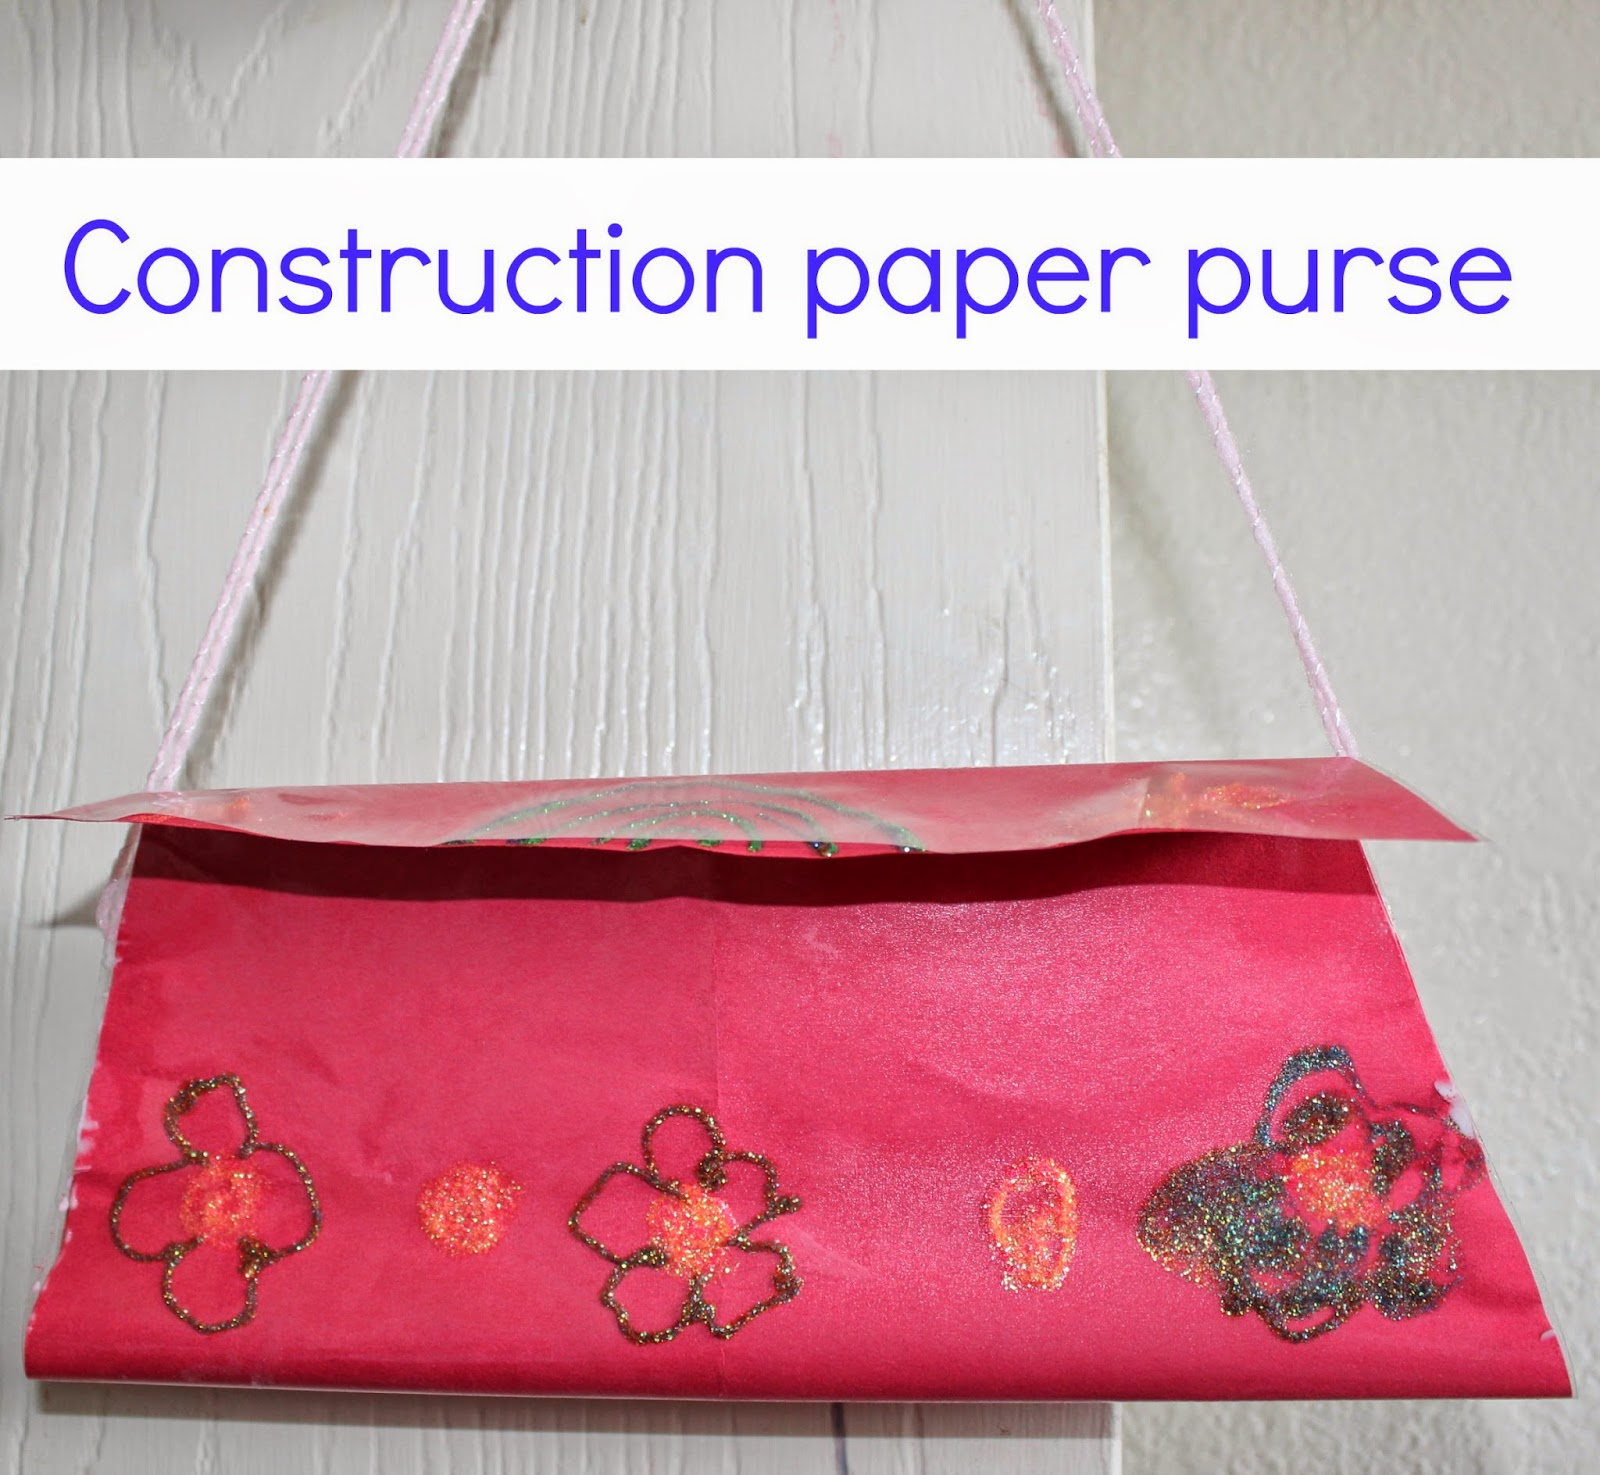 Simple Procedure To Make This Paper Purse From My Grandmother I Used For Younger Cousins And They All Loved Carrying Their Purses